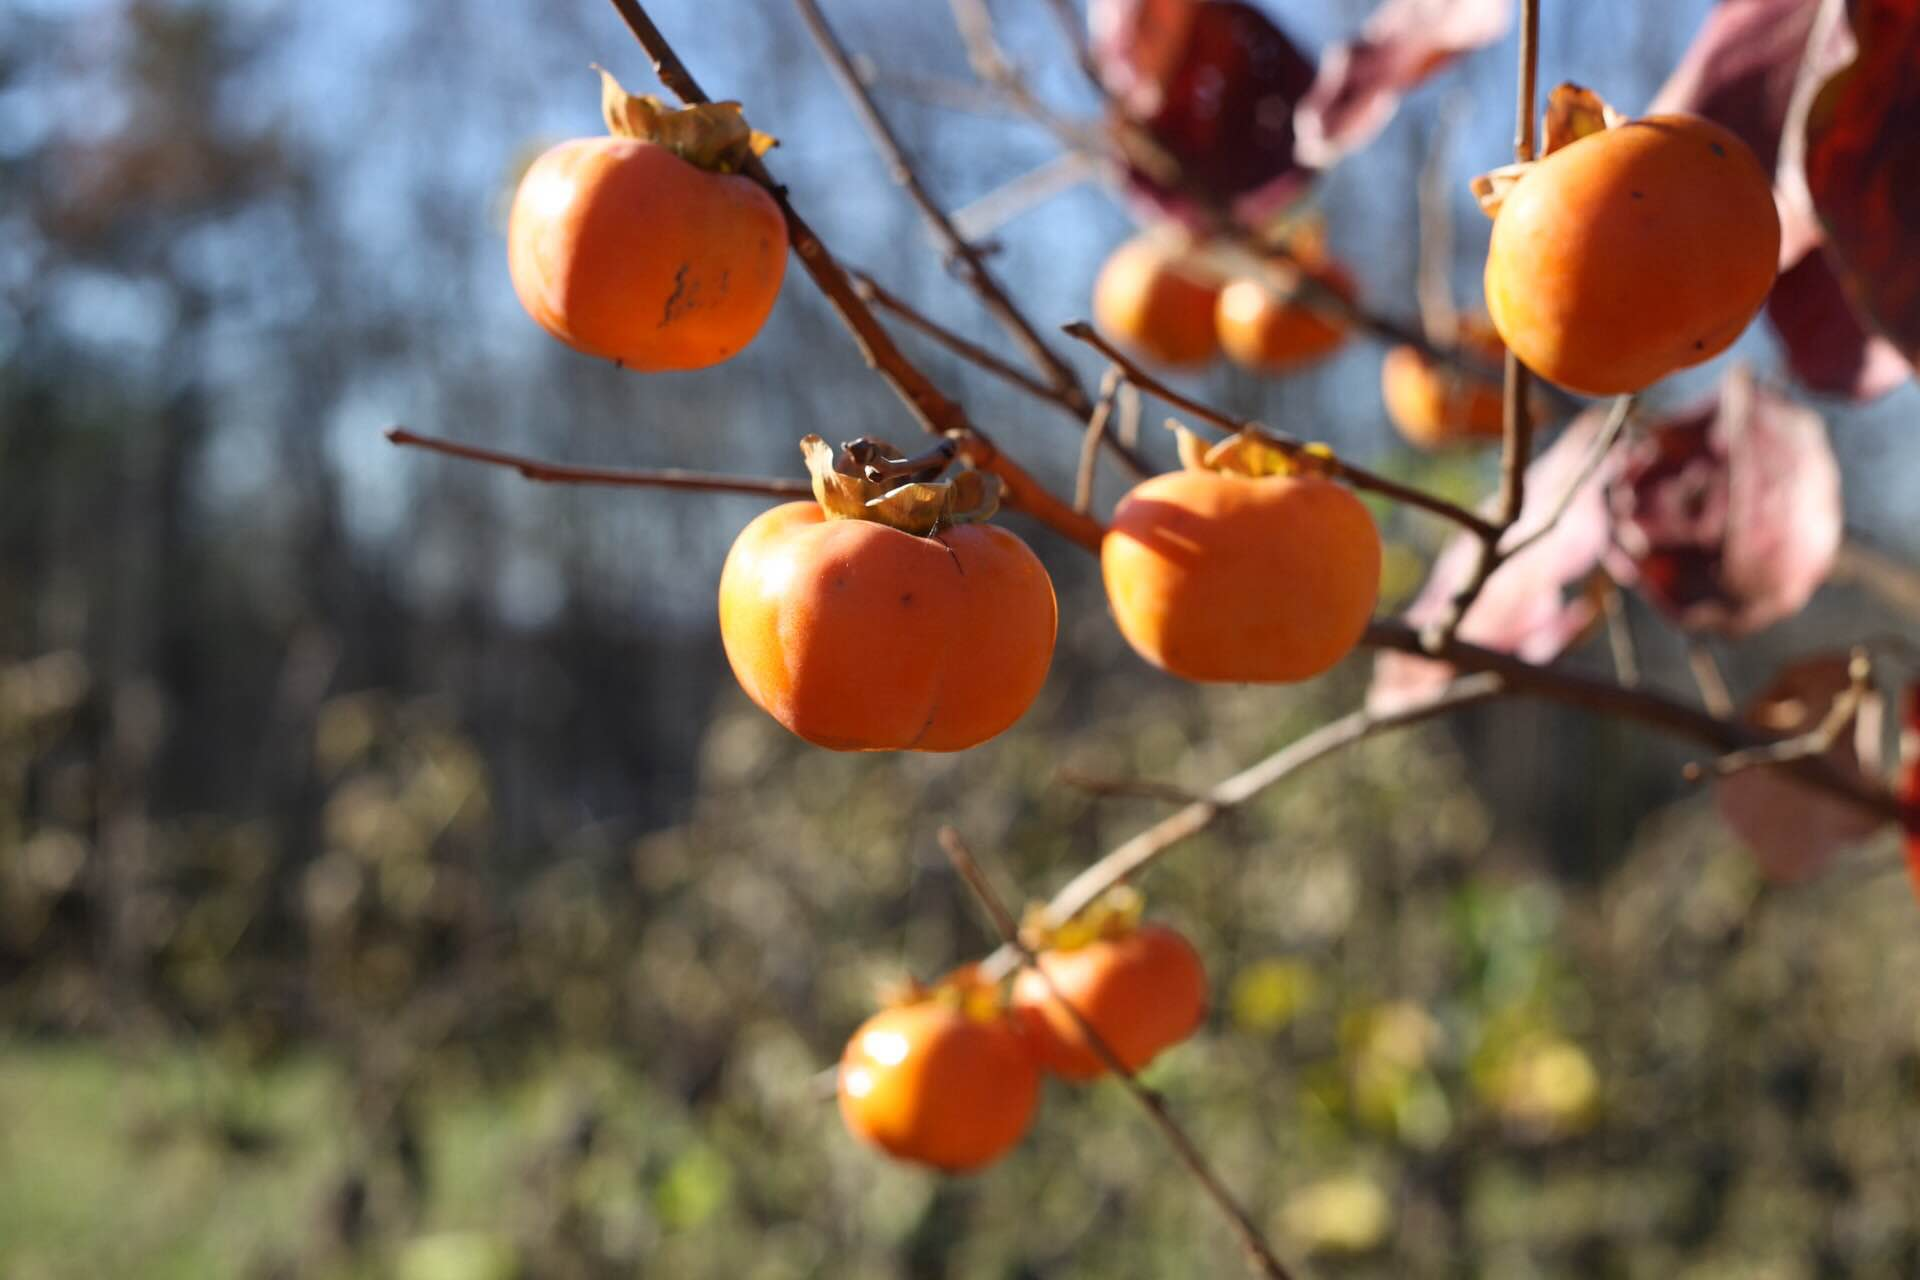 Bright orange persimmons hanging on to the tree late into the fall after the leaves are gone.